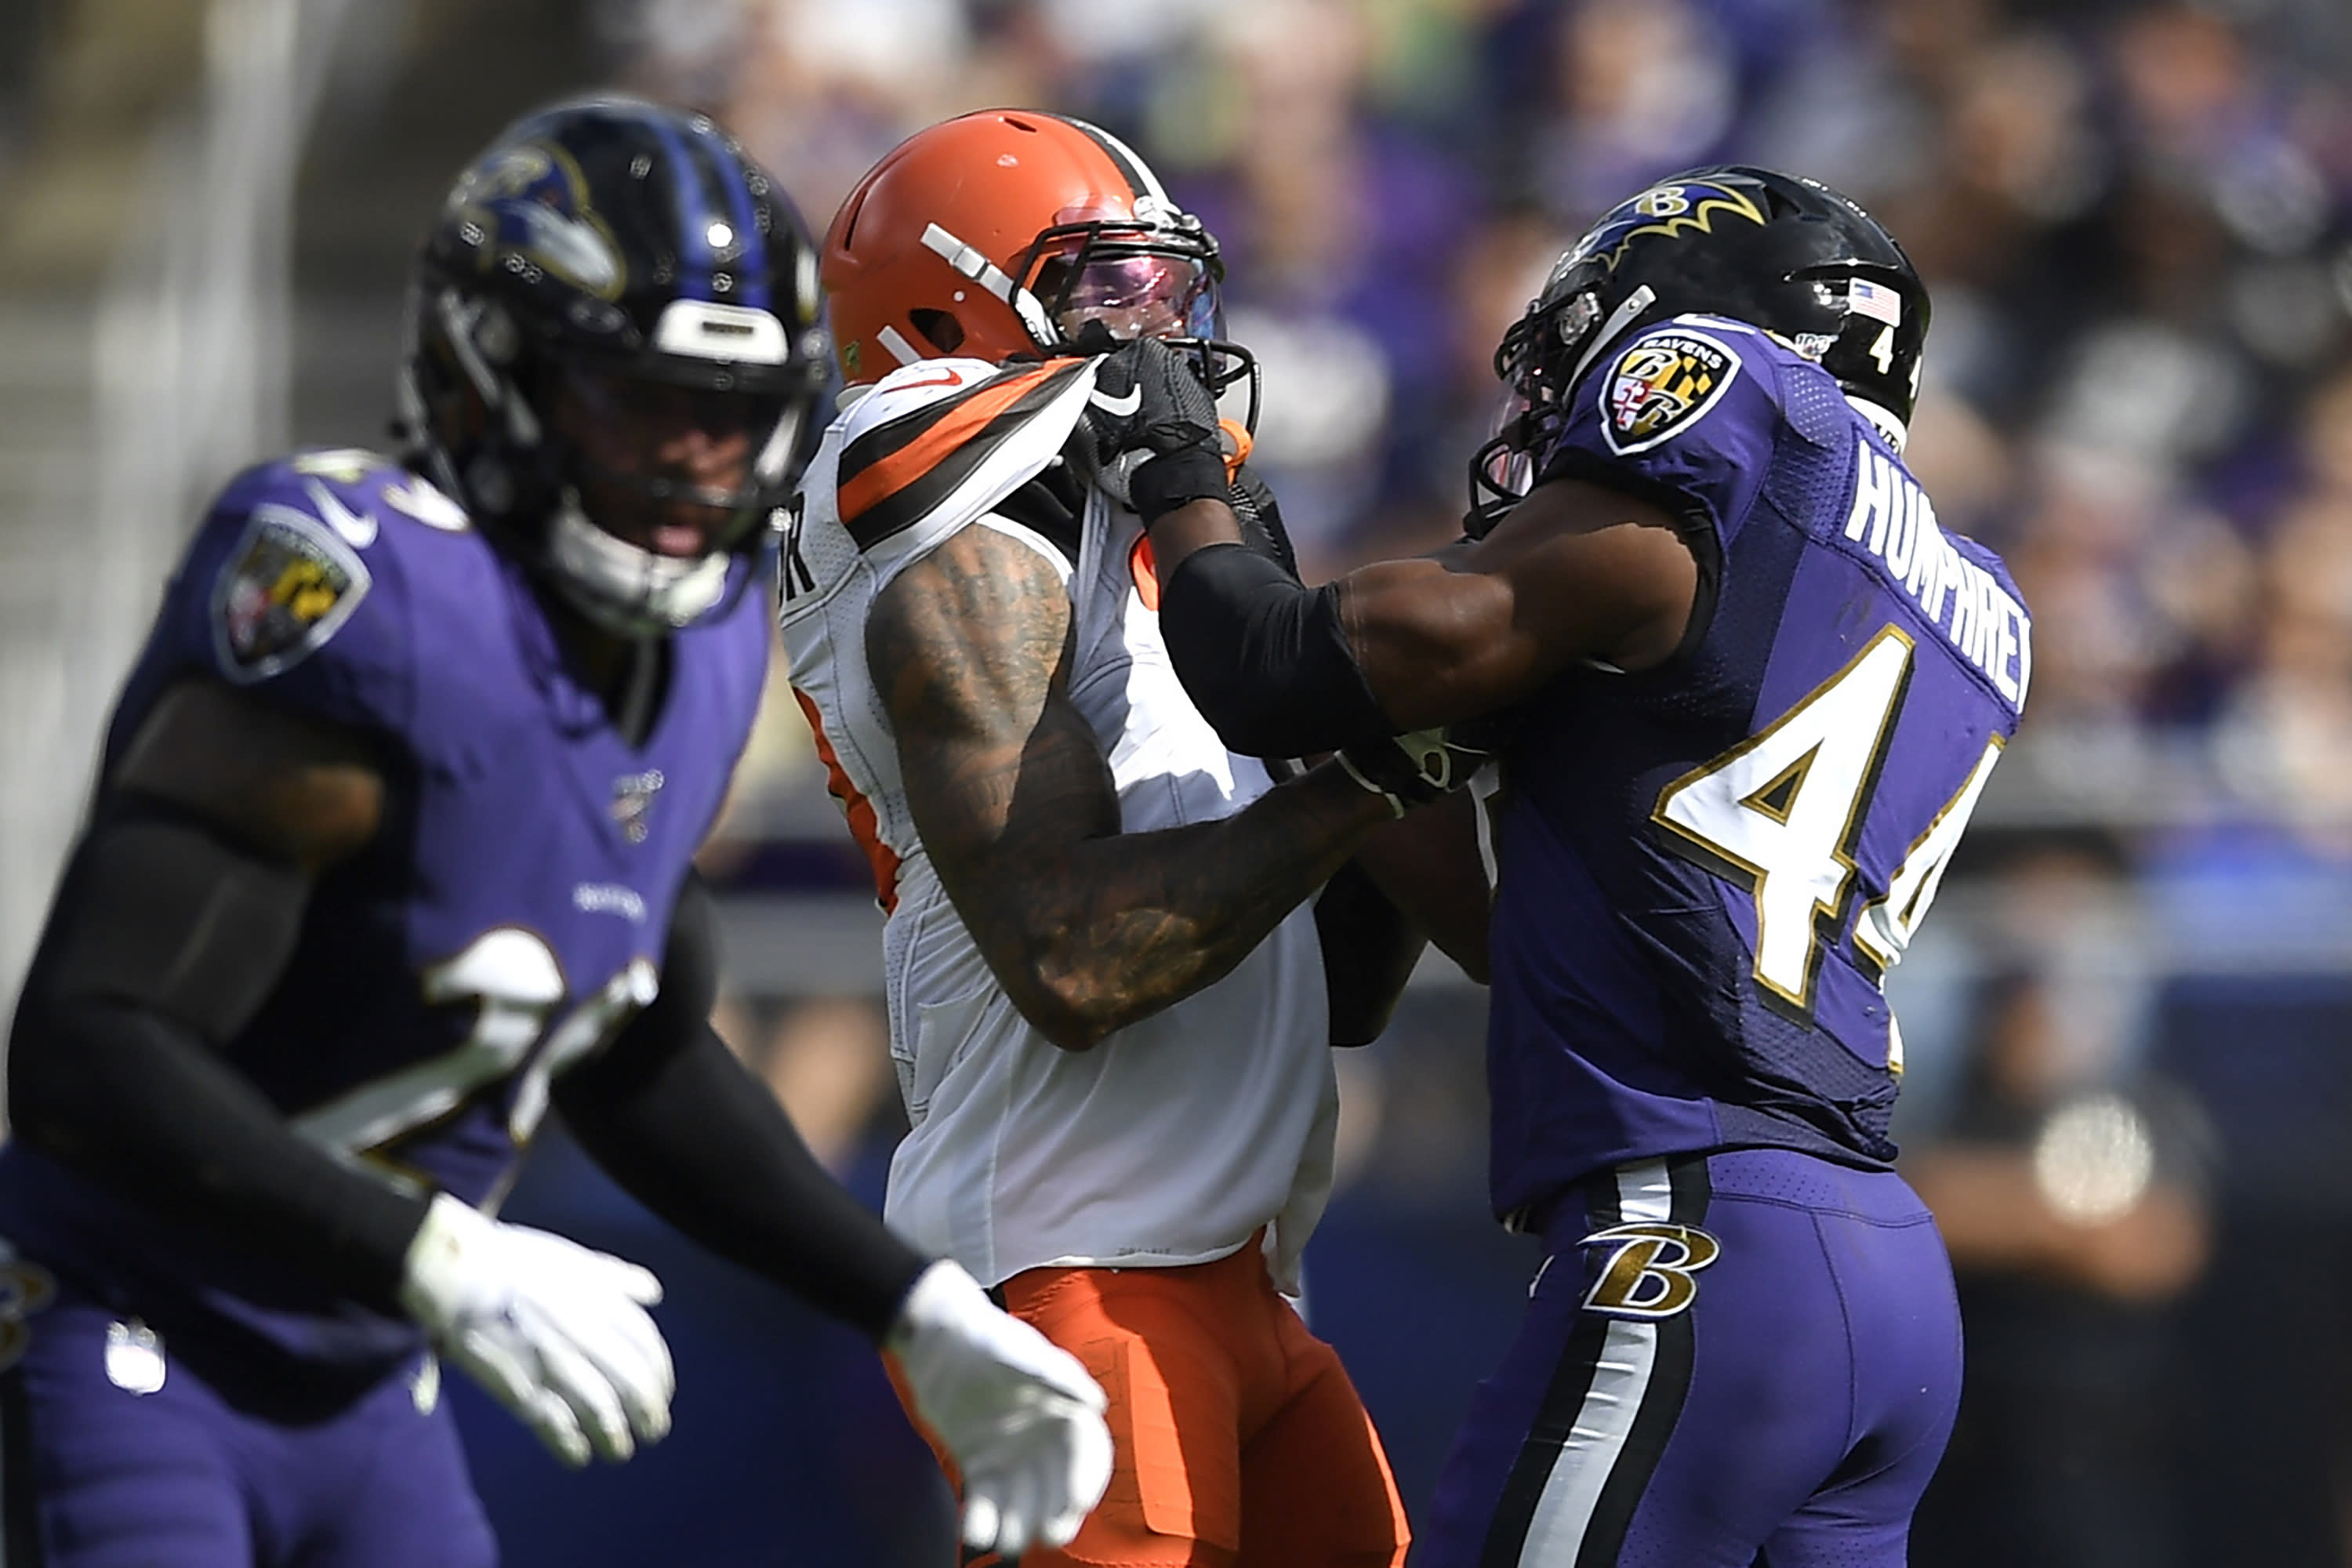 FILE - In this Sunday, Sept. 29, 2019, file photo, Cleveland Browns wide receiver Odell Beckham, center, and Baltimore Ravens cornerback Marlon Humphrey (44) grab each other during the second half of an NFL football game in Baltimore. Browns coach Freddie Kitchens wants more consistent NFL officiating after wide receiver Odell Beckham Jr. was choked during Sunday's game. Beckham got into a skirmish with Ravens cornerback Marlon Humphrey, who pinned the three-time Pro Bowler and had his hands around his neck before being pulled away. Both players were assessed personal fouls, but neither was ejected. Kitchens said he planned to reach out to the league about that situation in particular and officiating evenness in general. (AP Photo/Nick Wass, File)